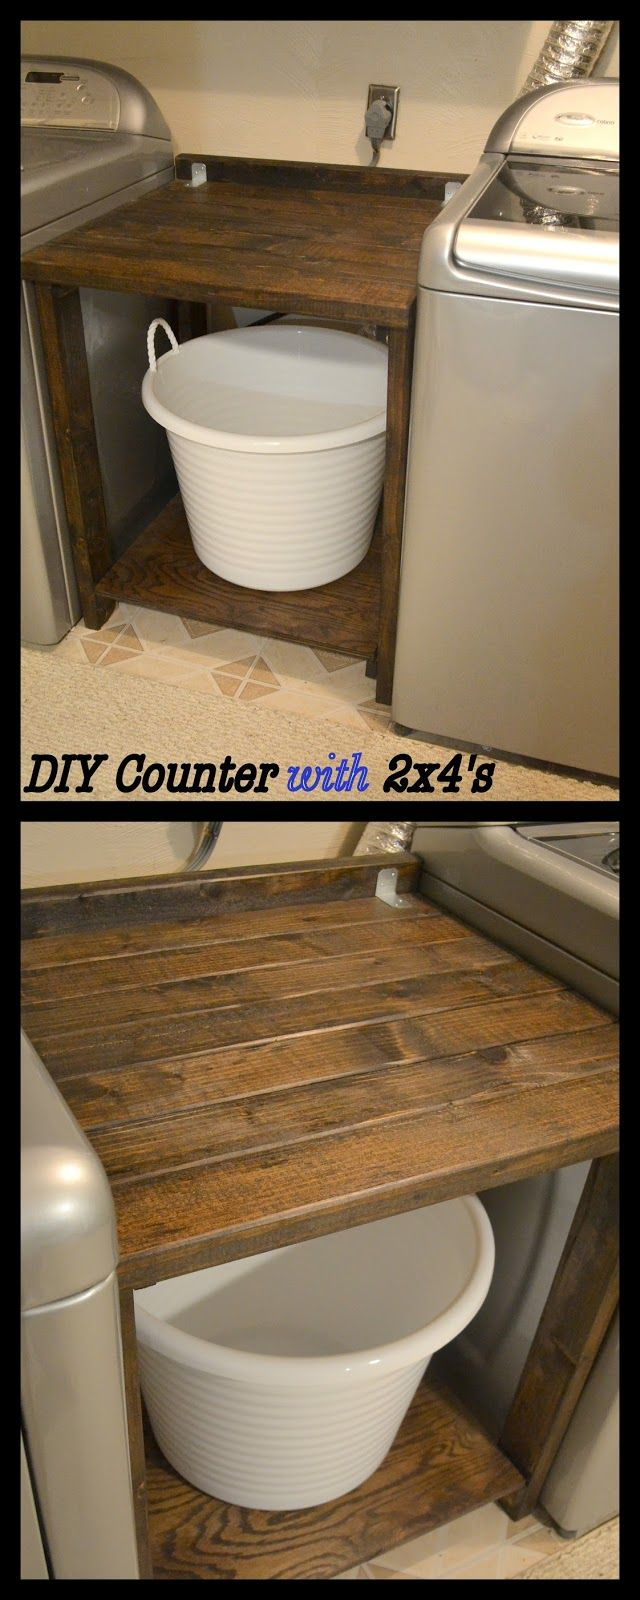 Logic and Laughter: Laundry Room Makeover Part 5 - MORE Counter Space